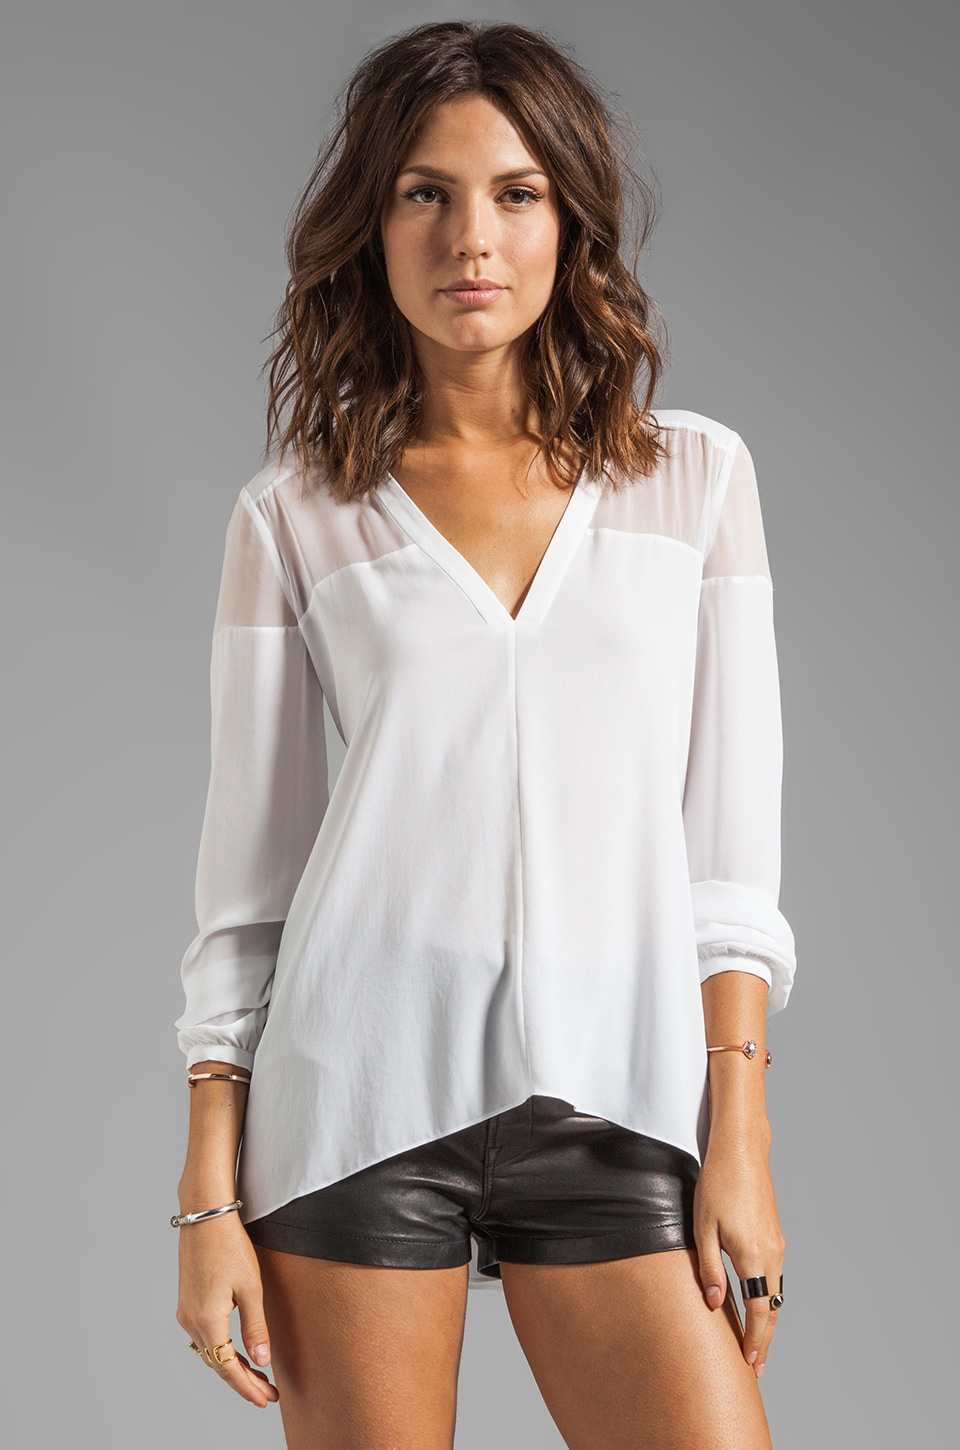 Elizabeth and James Karin Blouse in Chalk White